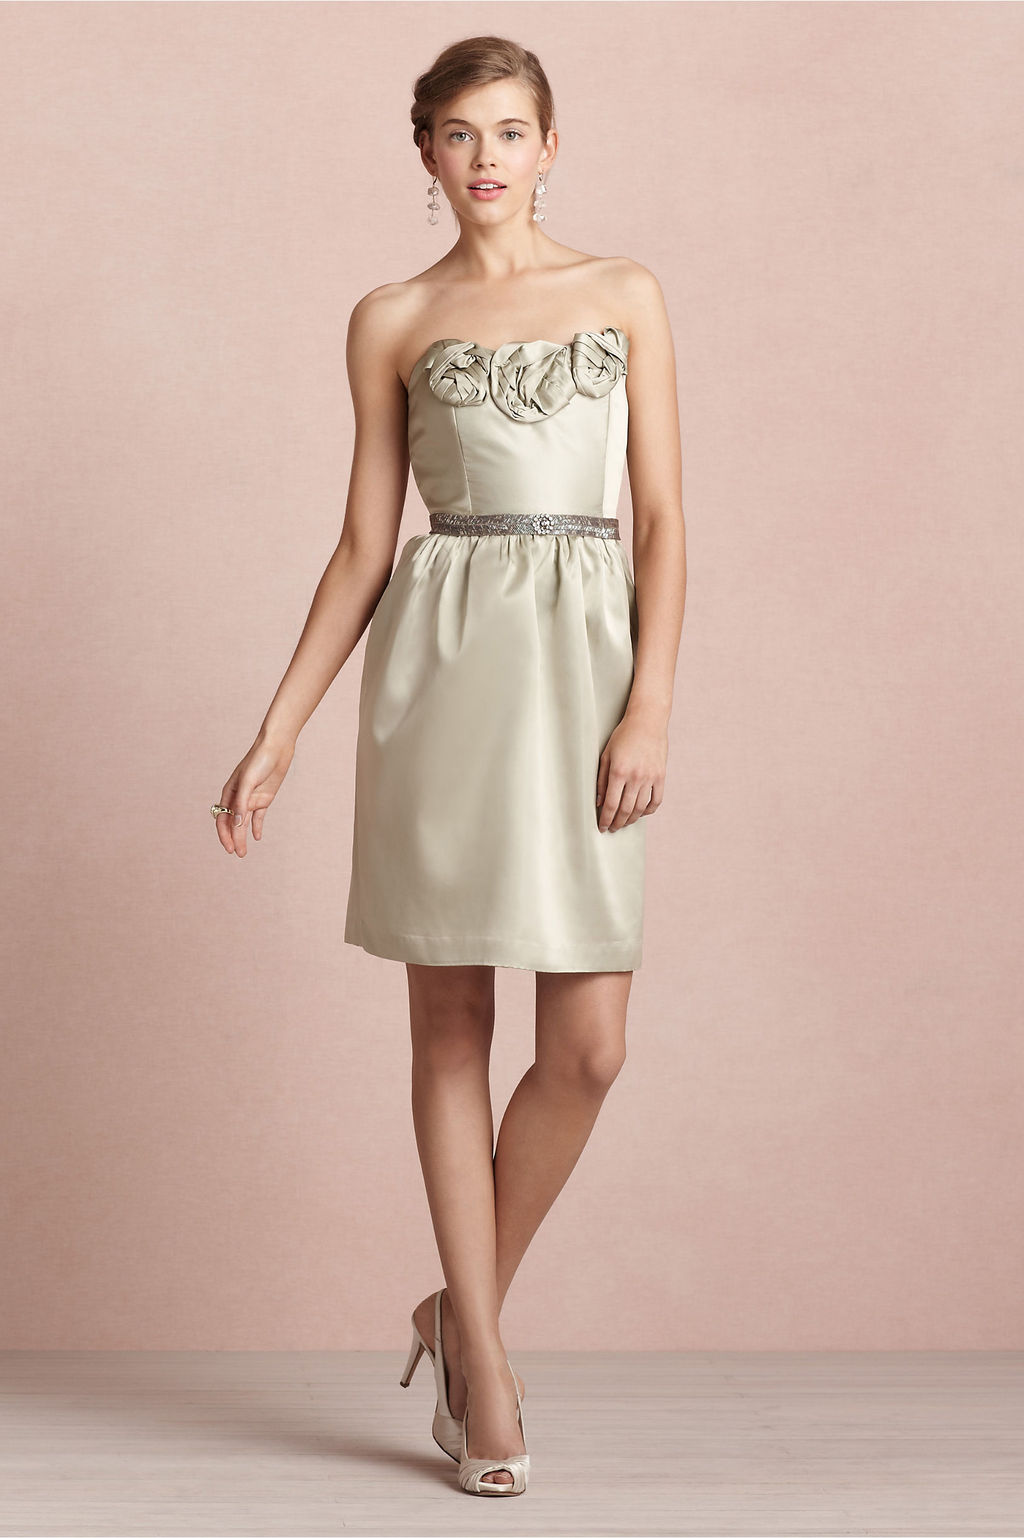 Covetable-bridesmaid-dresses-from-bhldn-2013-bridal-party-style-champagne.full